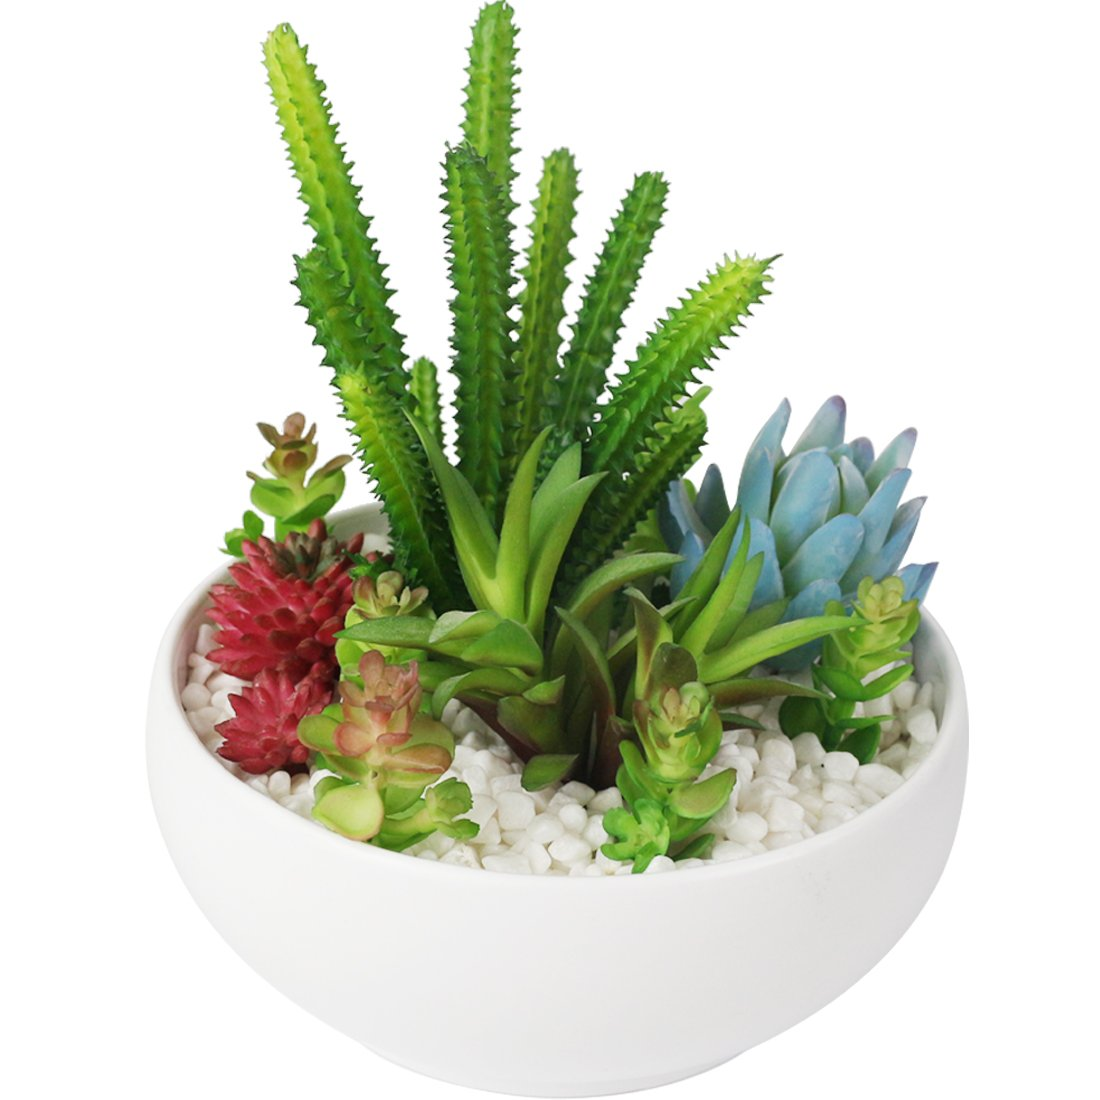 Myartte Colorful Artificial Succulent Plants Collection with White Resin Bowl for Home Decor/Office Decoration